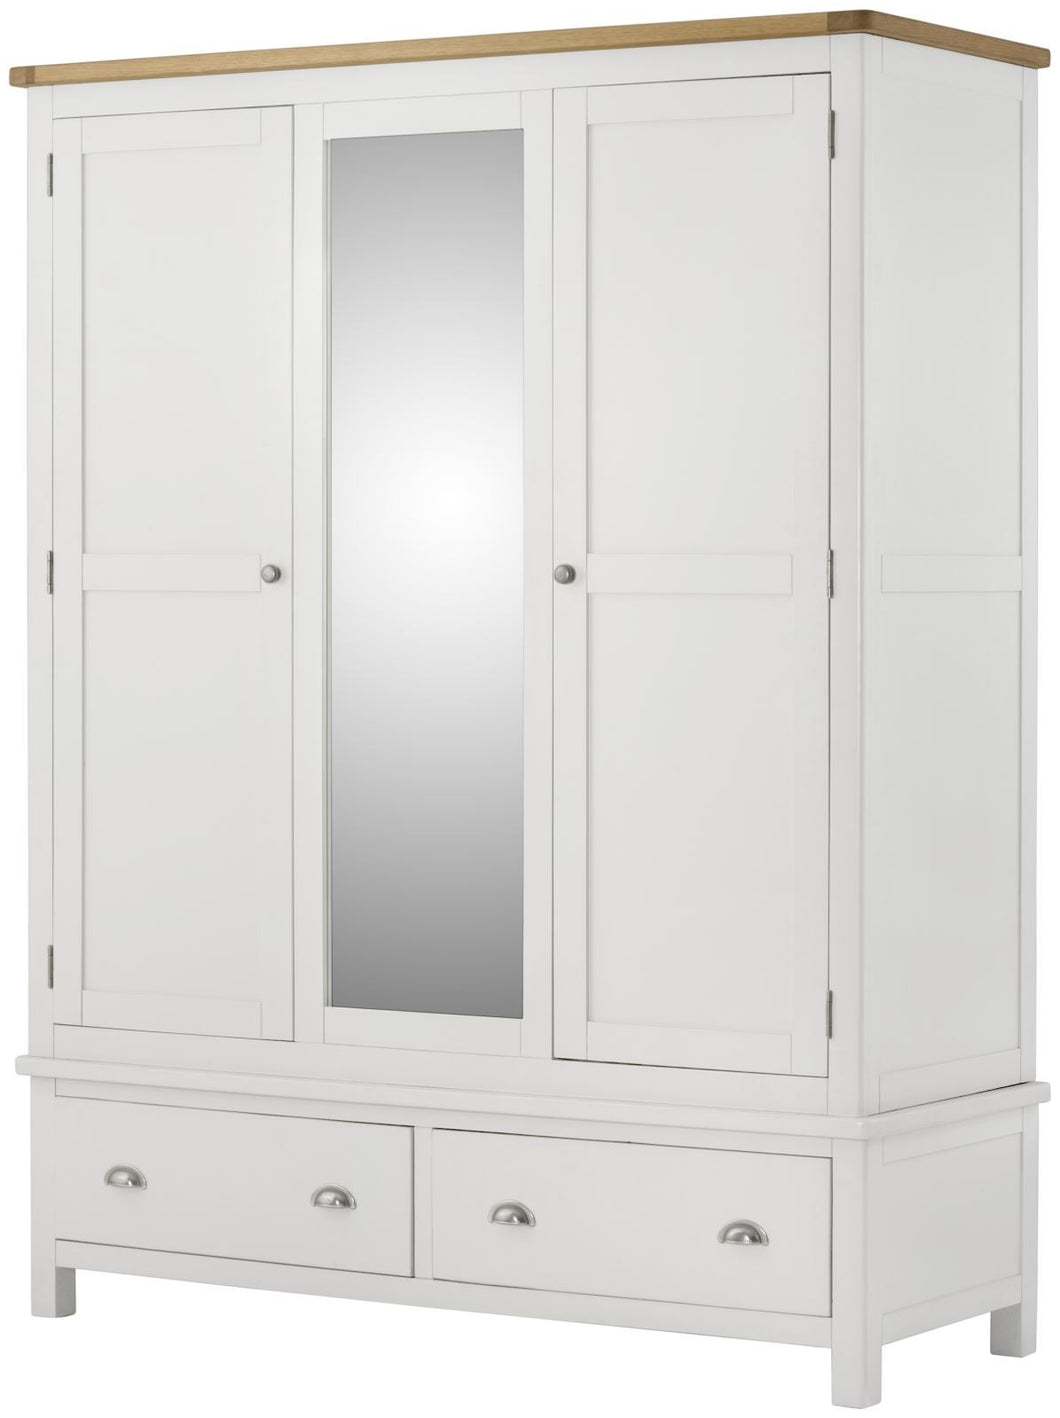 Cottage Triple Wardrobe White - Tylers Department Store